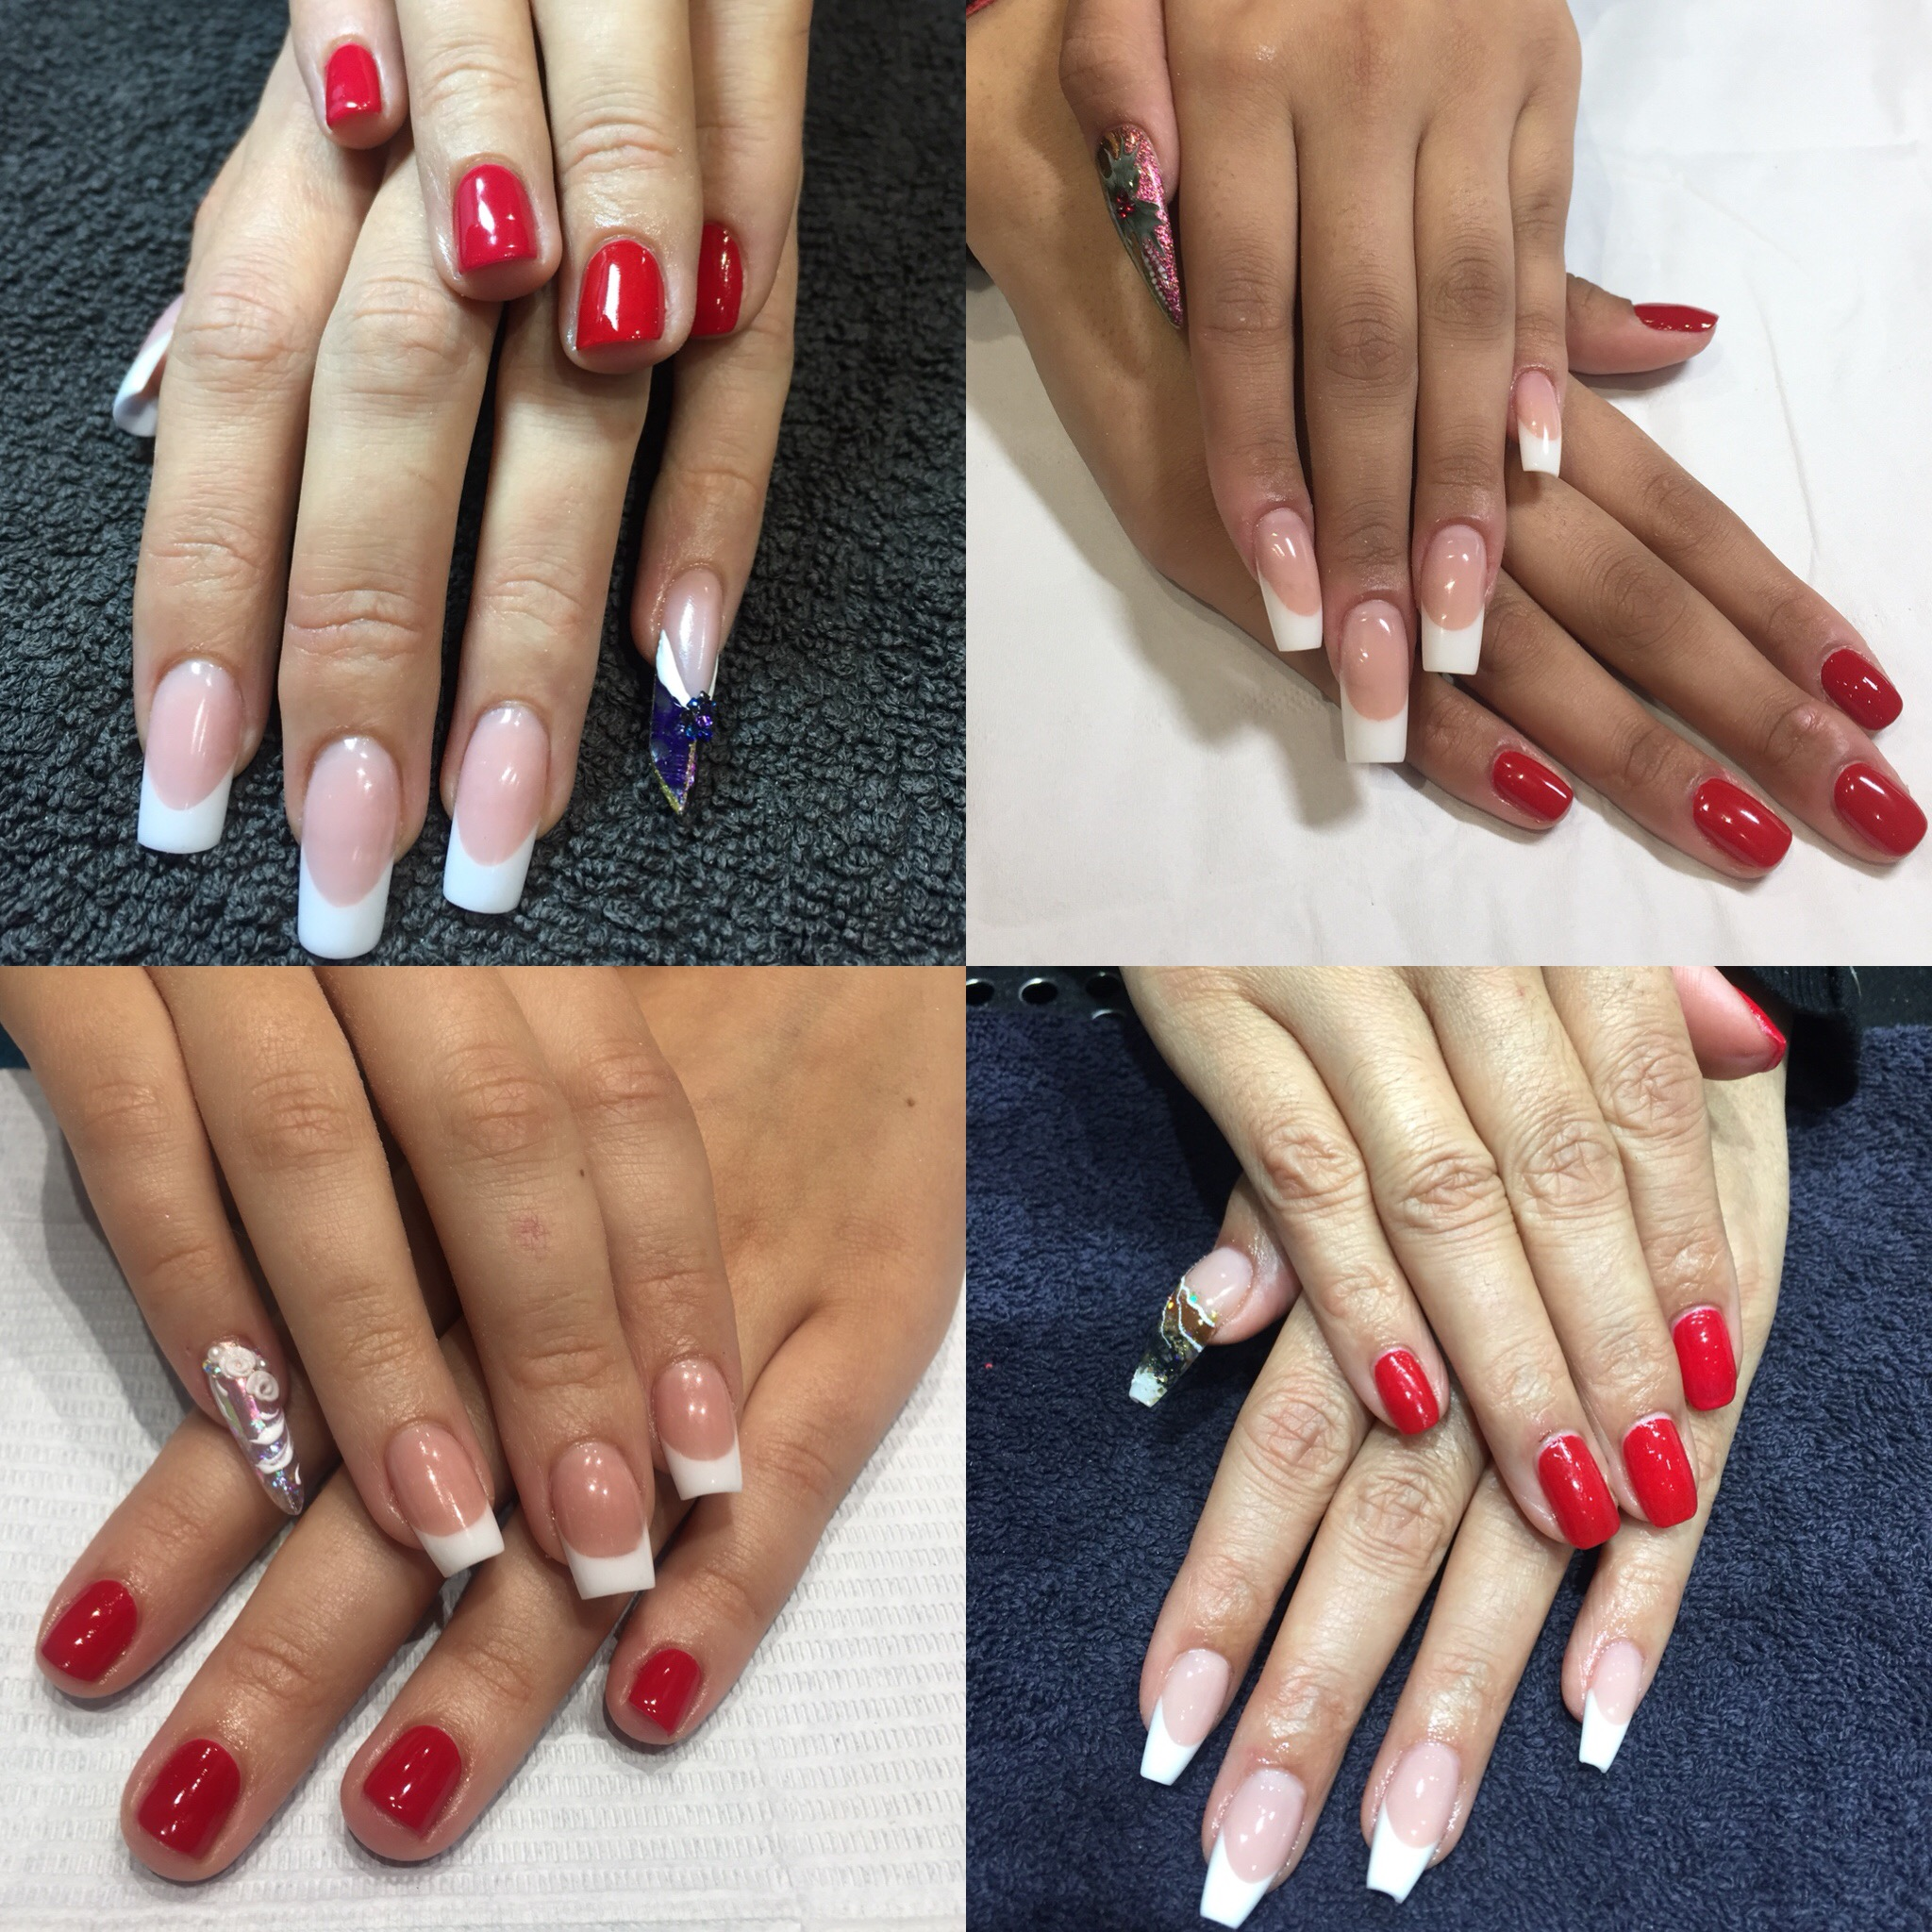 Nail Professional finalists finished looks